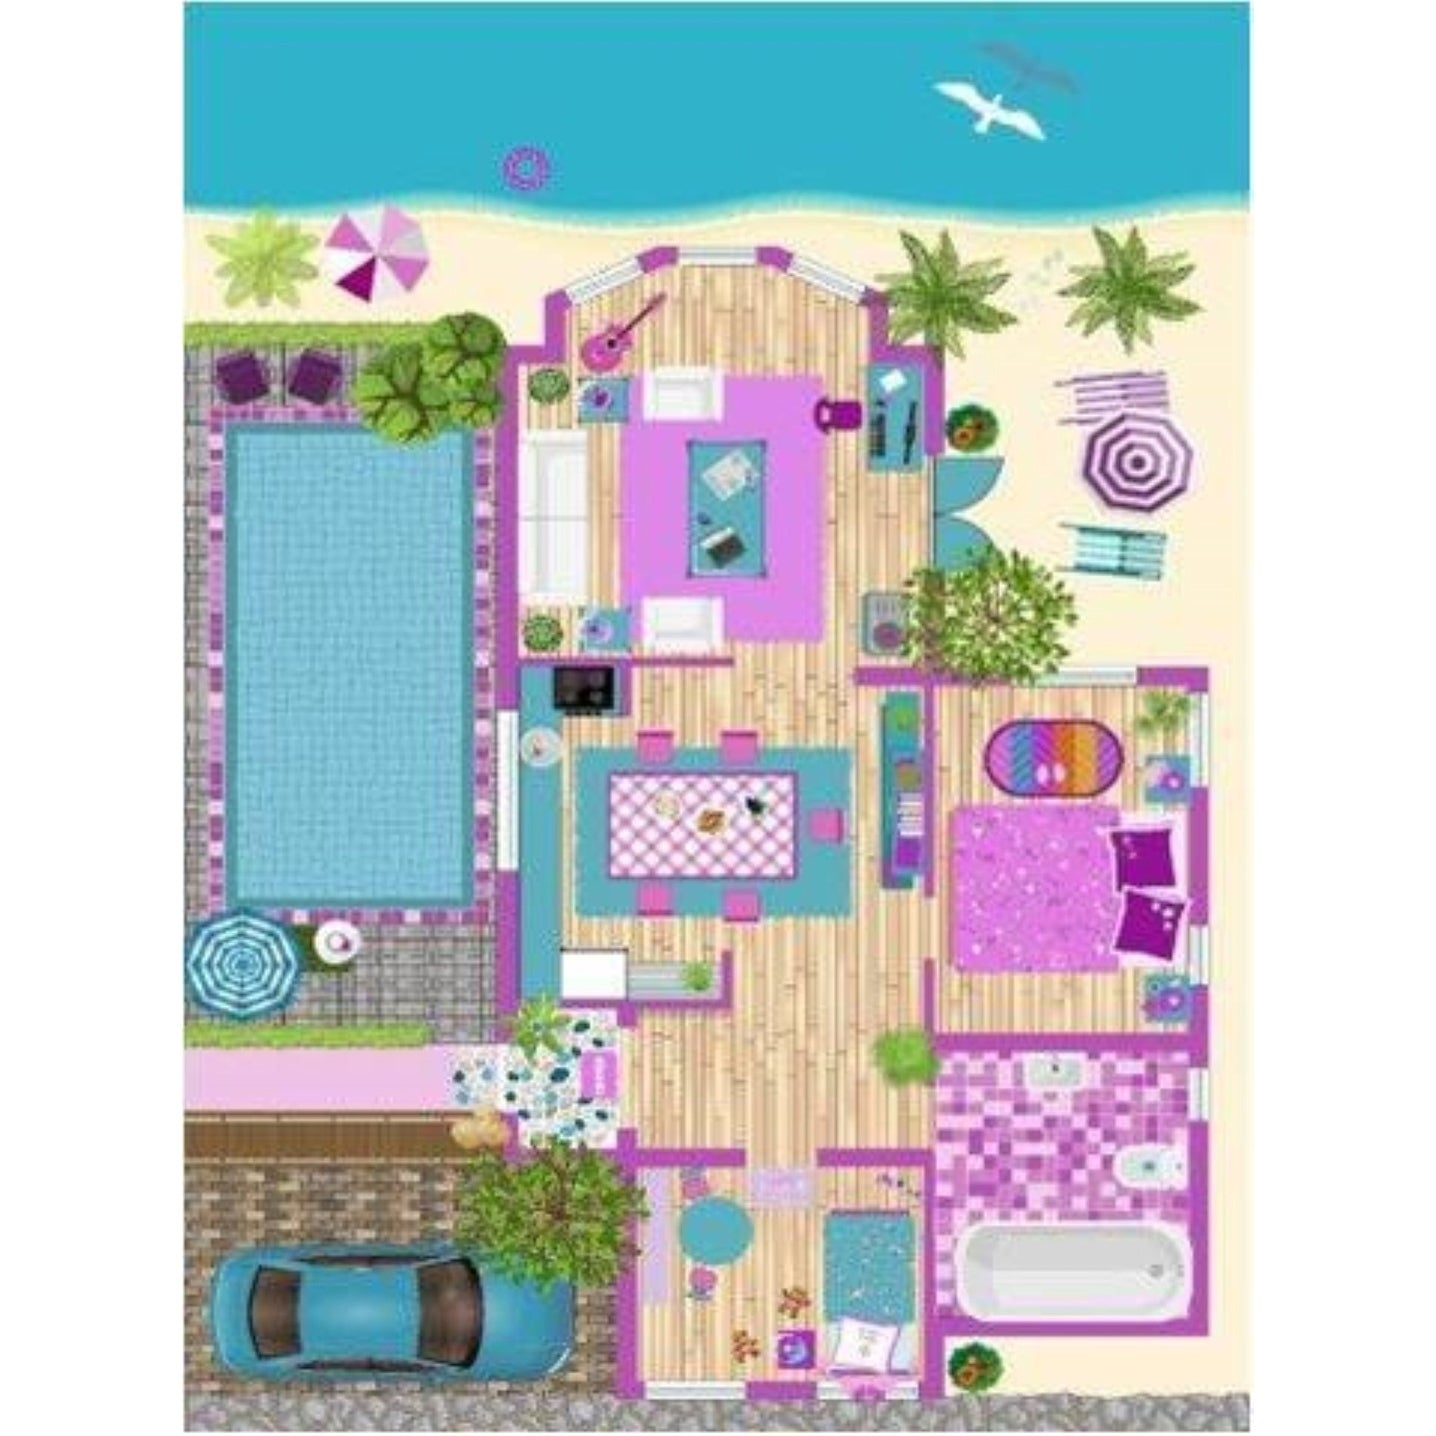 Shop Black Friday Deals On La Dole Rugs Pink Turquoise Blue Barbie Doll House Area Rug Mat For Kids Childrens Room Decoration Playroom 5x7 8x10 7x9 Feet Overstock 29352035